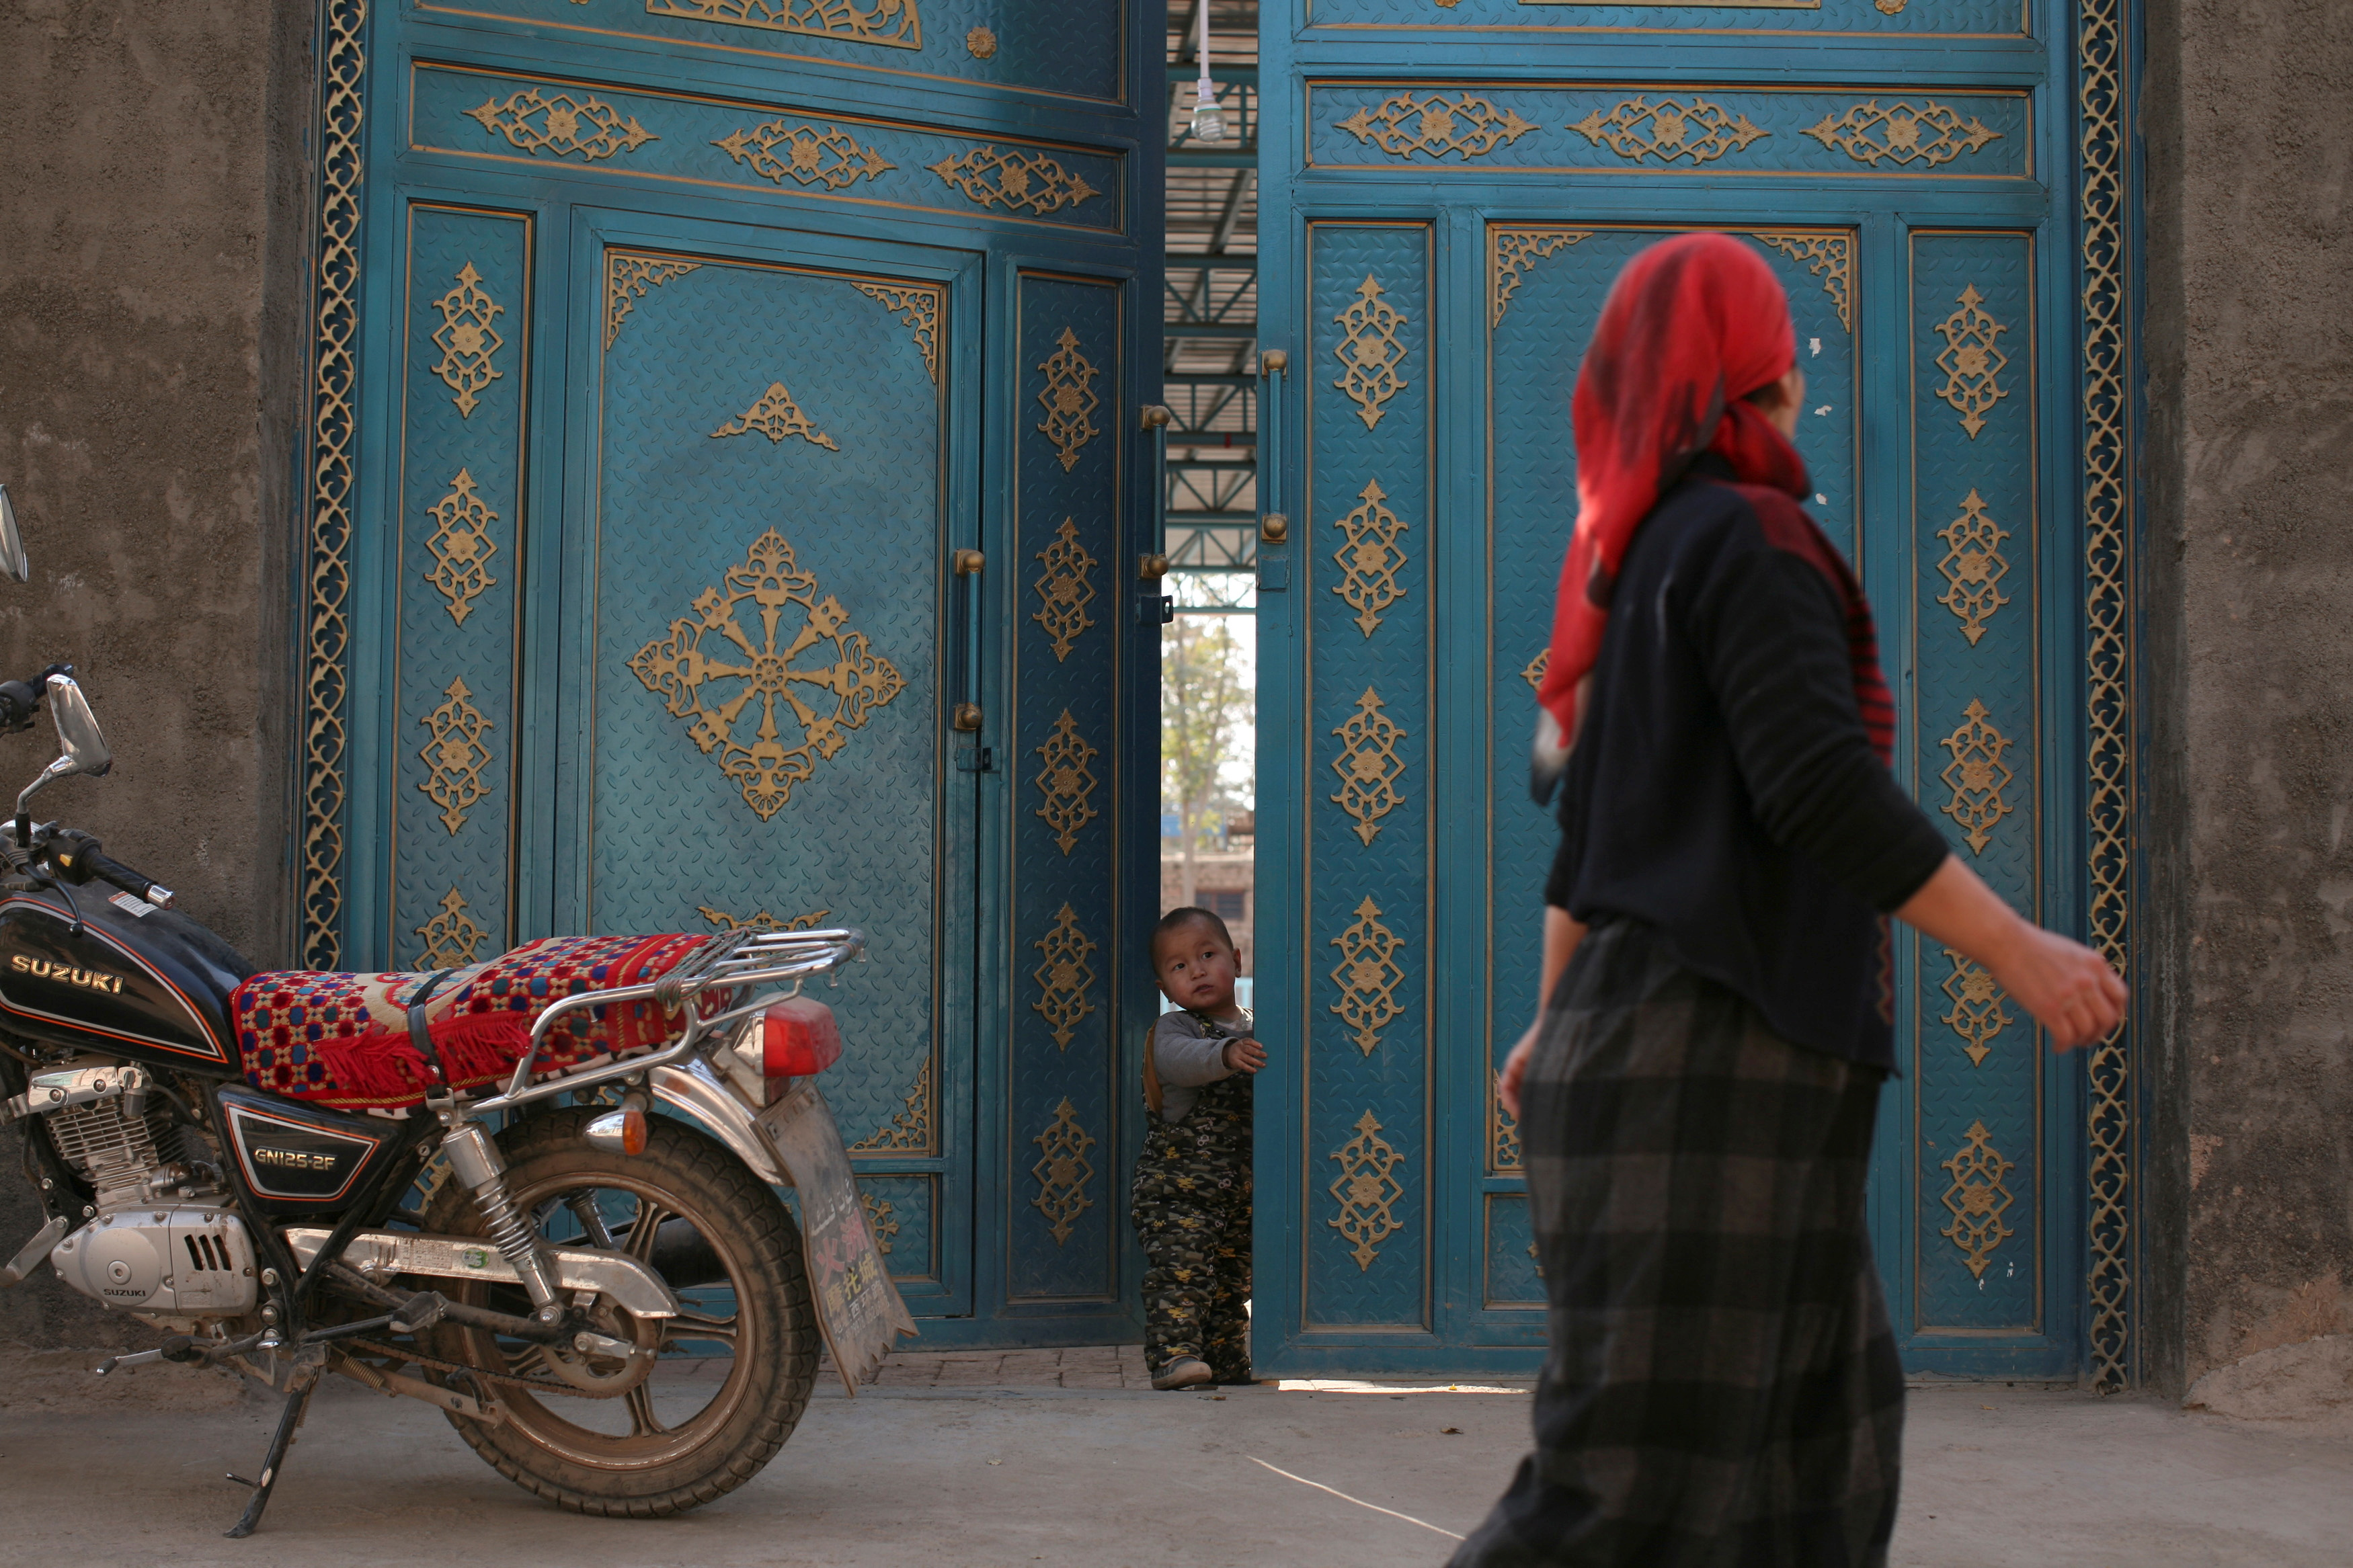 A child looks out from a door as a Uighur woman walks by in a residential area in Turpan, Xinjiang Uighur Autonomous Region October 31, 2013.  REUTERS/Michael Martina/File Photo